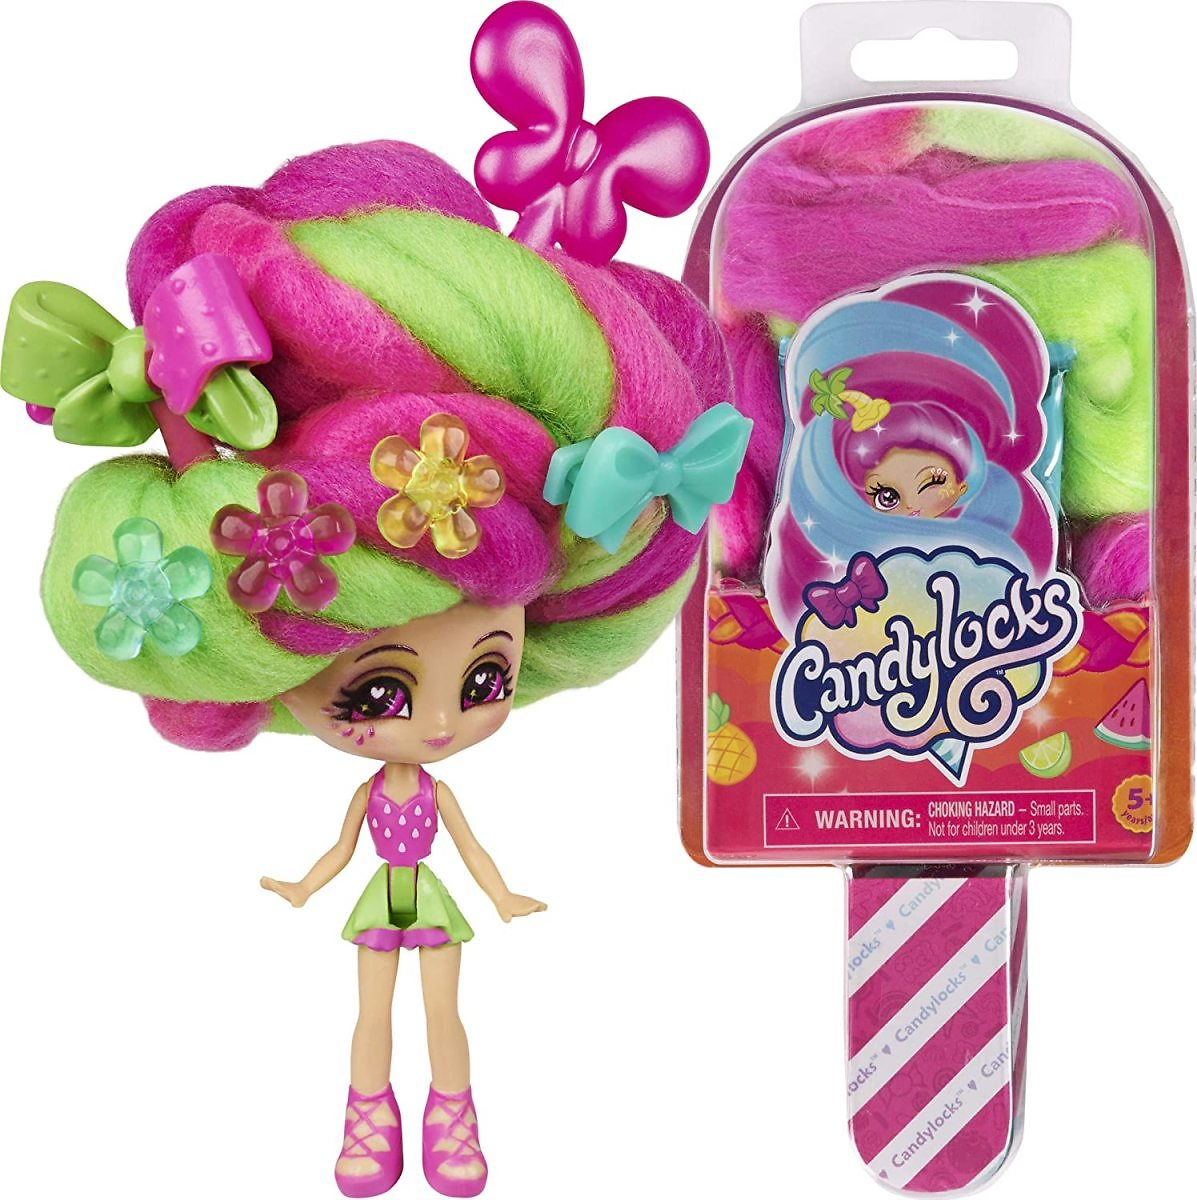 Candylocks 3-Inch Scented Collectible Surprise Doll with Accessories